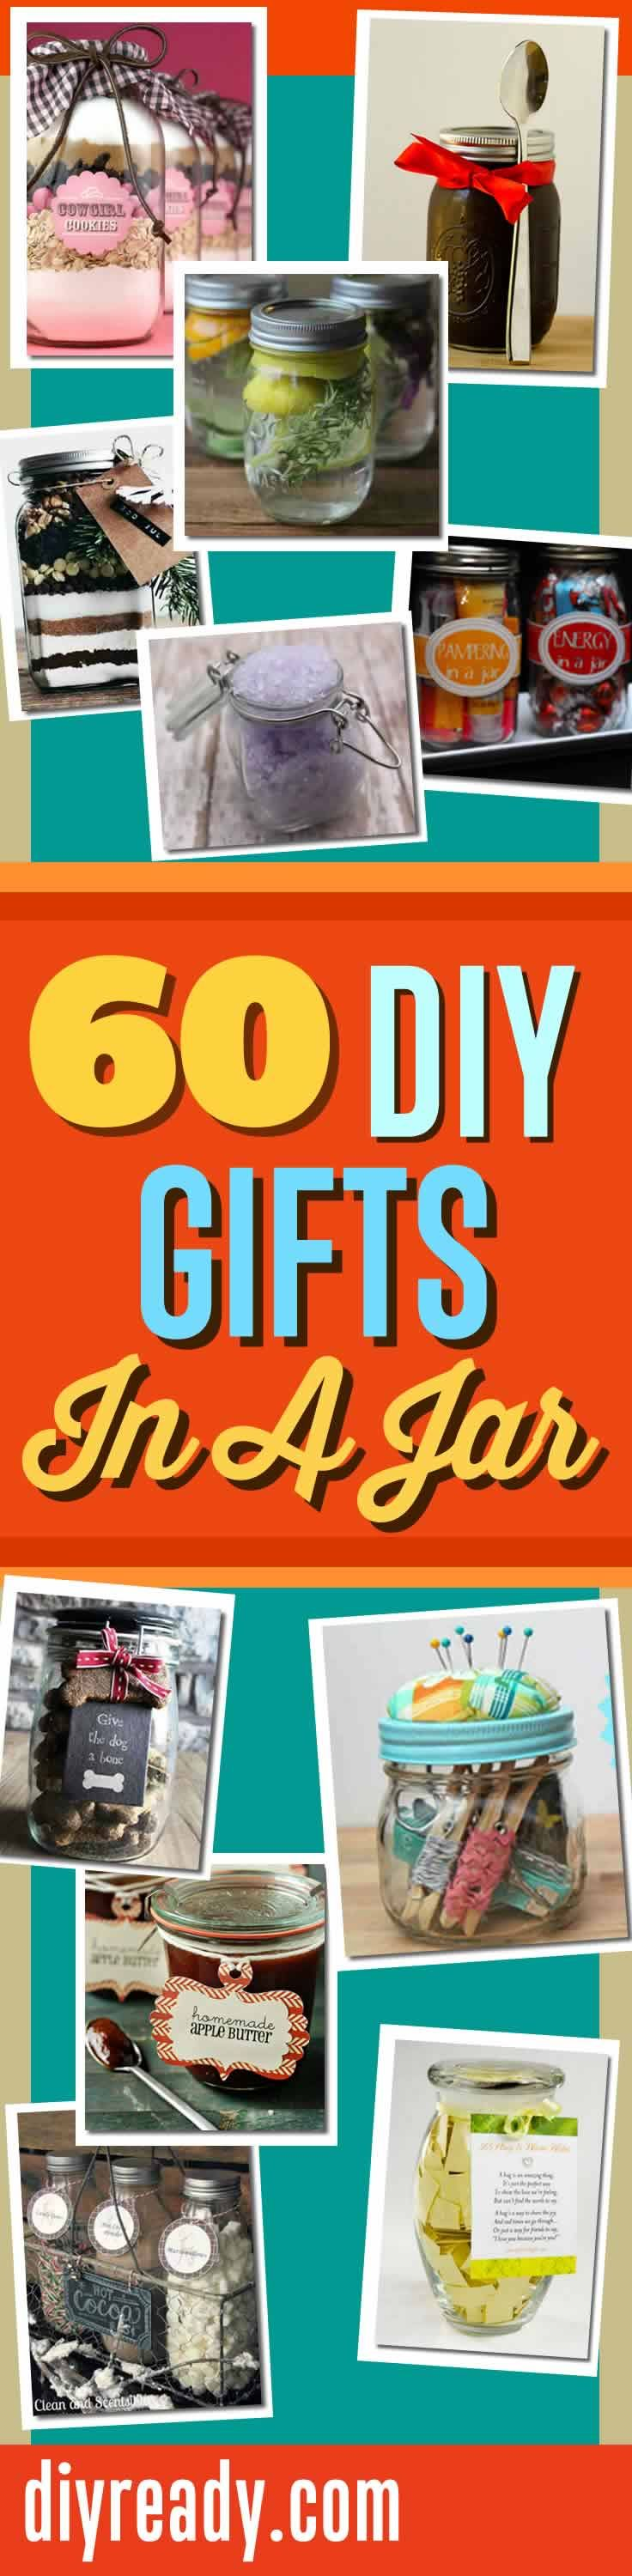 Everyone loves something that's made by hands. We have listed 60 cute DIY gifts in a jar that are not only budget-friendly but also guaranteed to please.